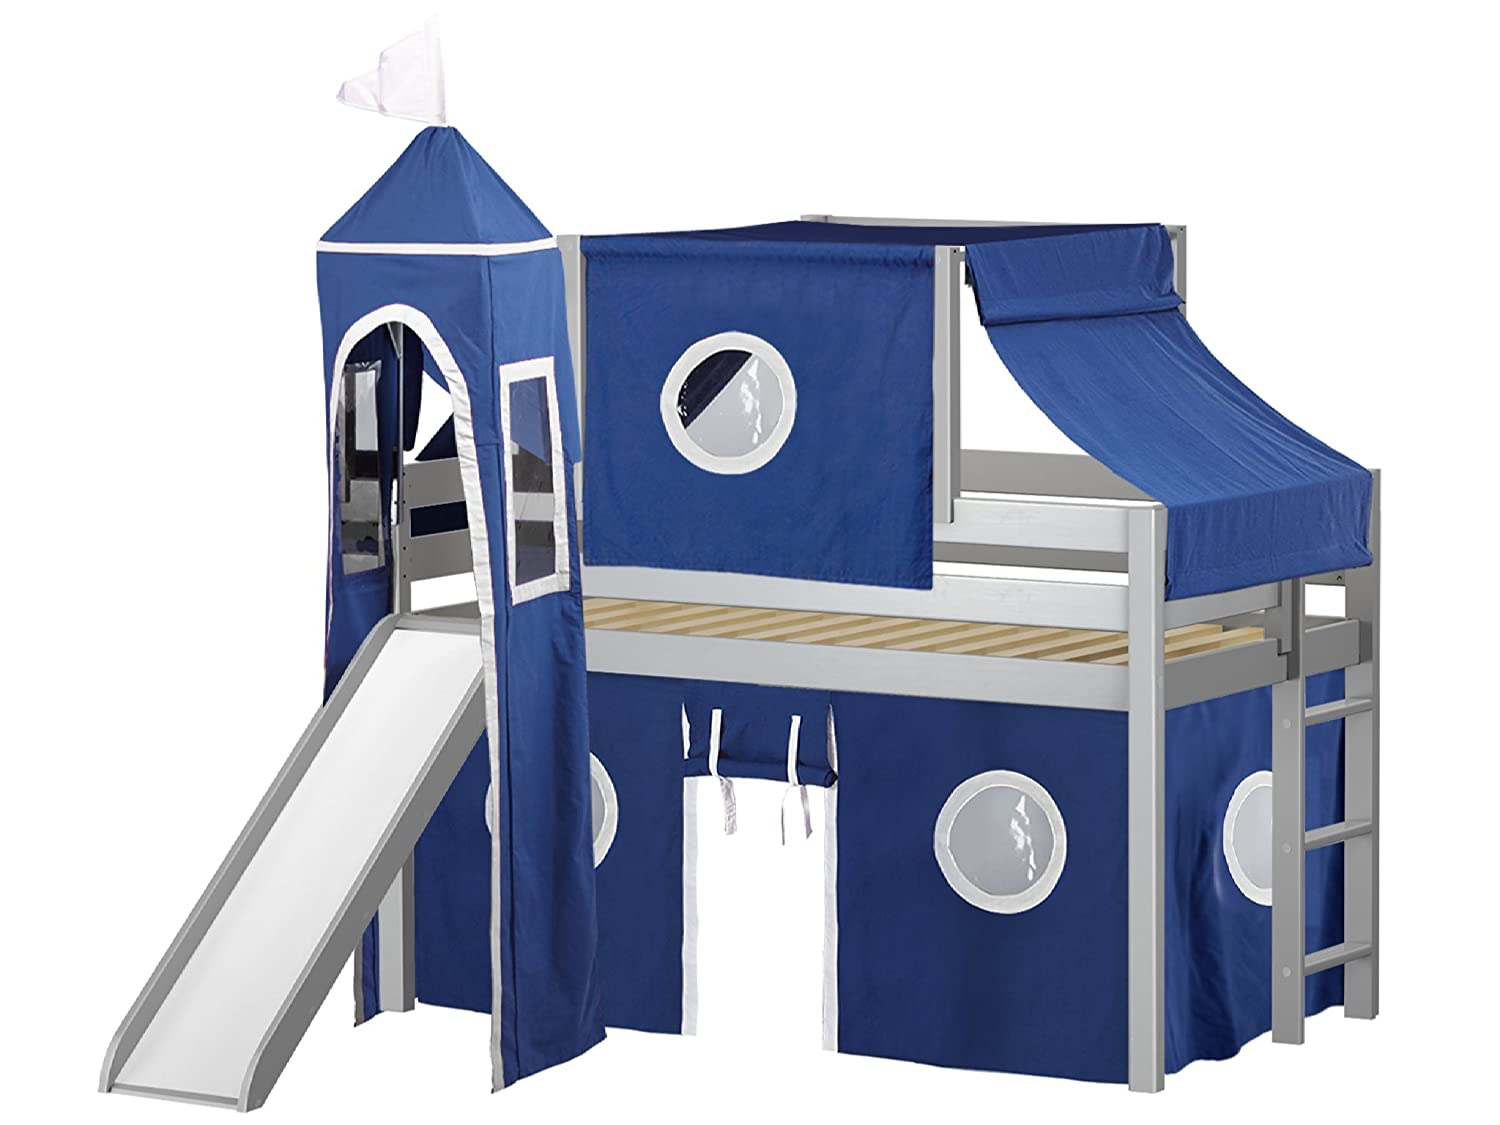 JACKPOT! Castle Low Loft Bed with Slide Blue & White Tent and Tower, Loft Bed, Twin, Gray Maxwood